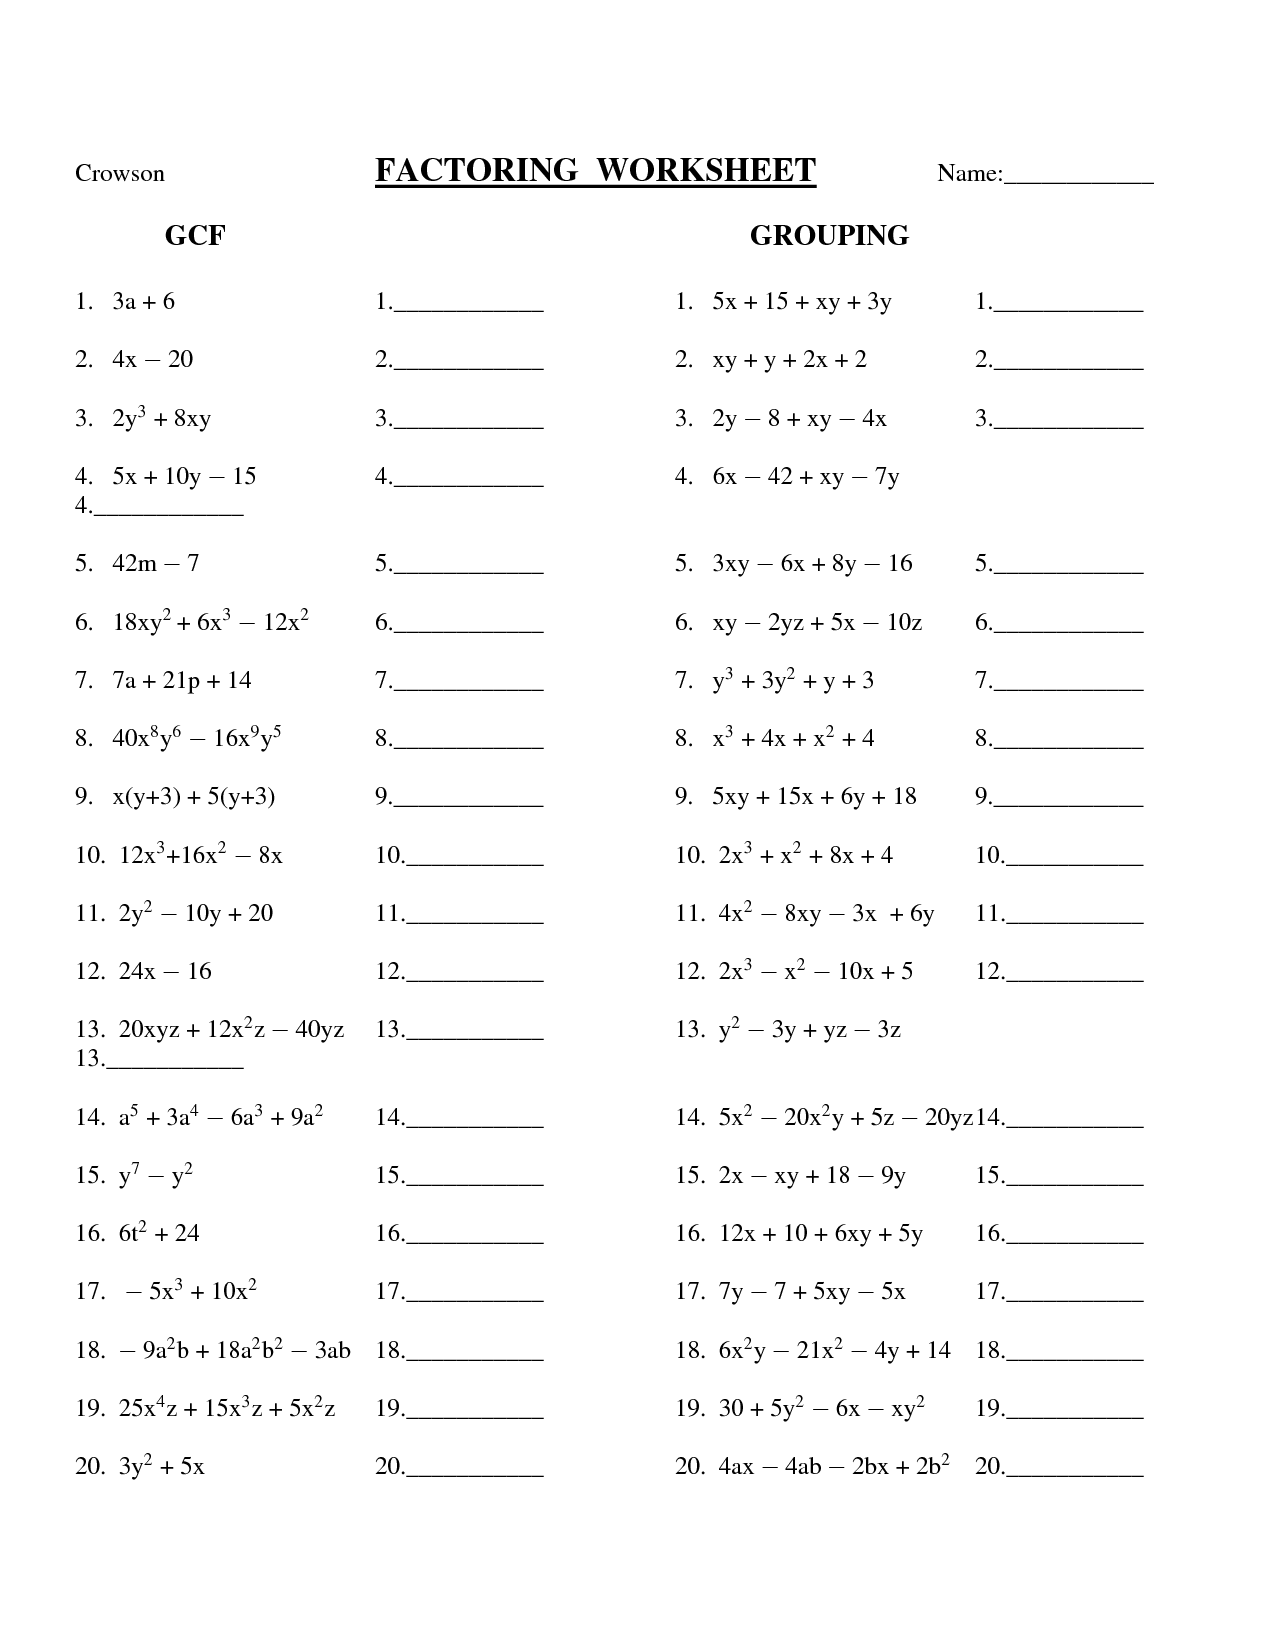 244 244 practice factoring ax24+bx+c worksheet answers With Factoring Ax2 Bx C Worksheet